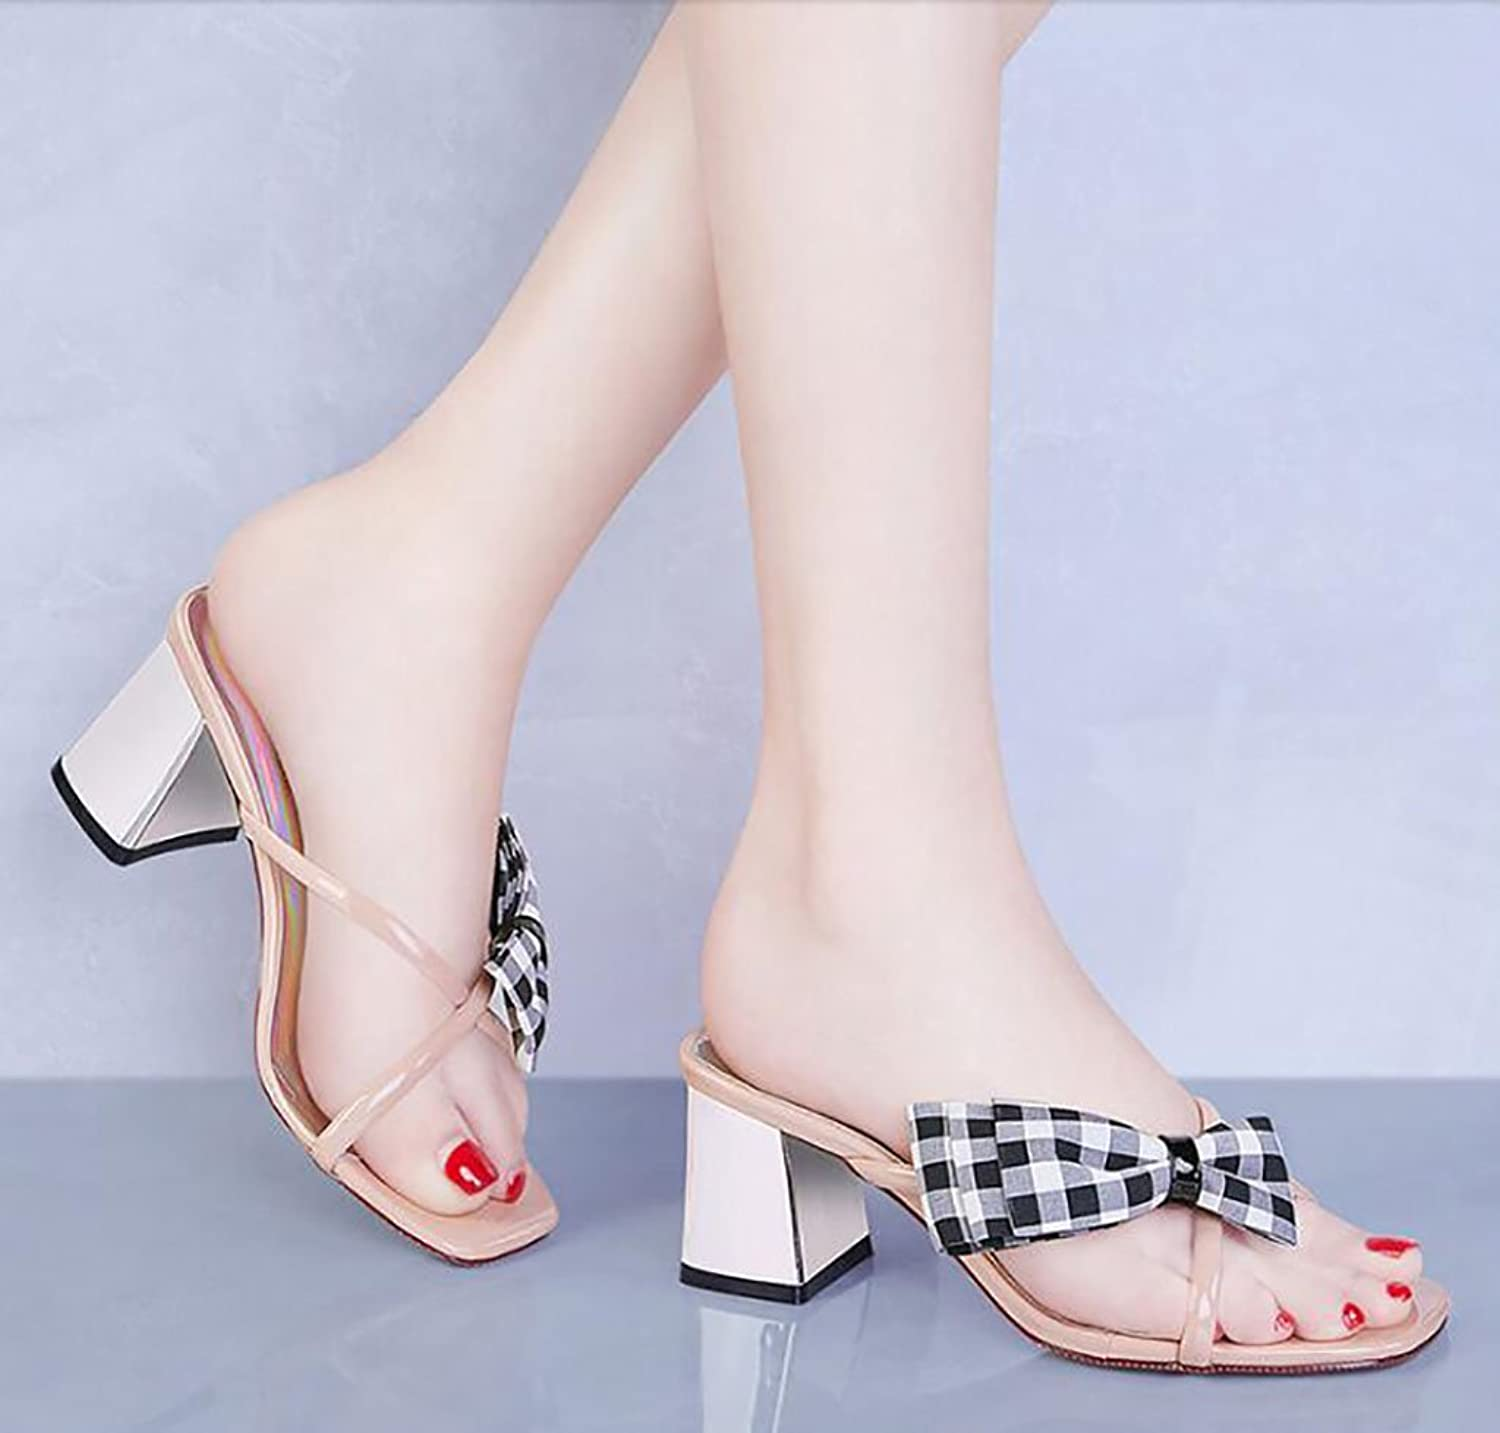 Sandals and Slippers Women's Summer Korean Version of The Wild Thick with Slippers wear Stylish high Heels shoes Flat Sandals,Fashion Sandals (color   B, Size   34)